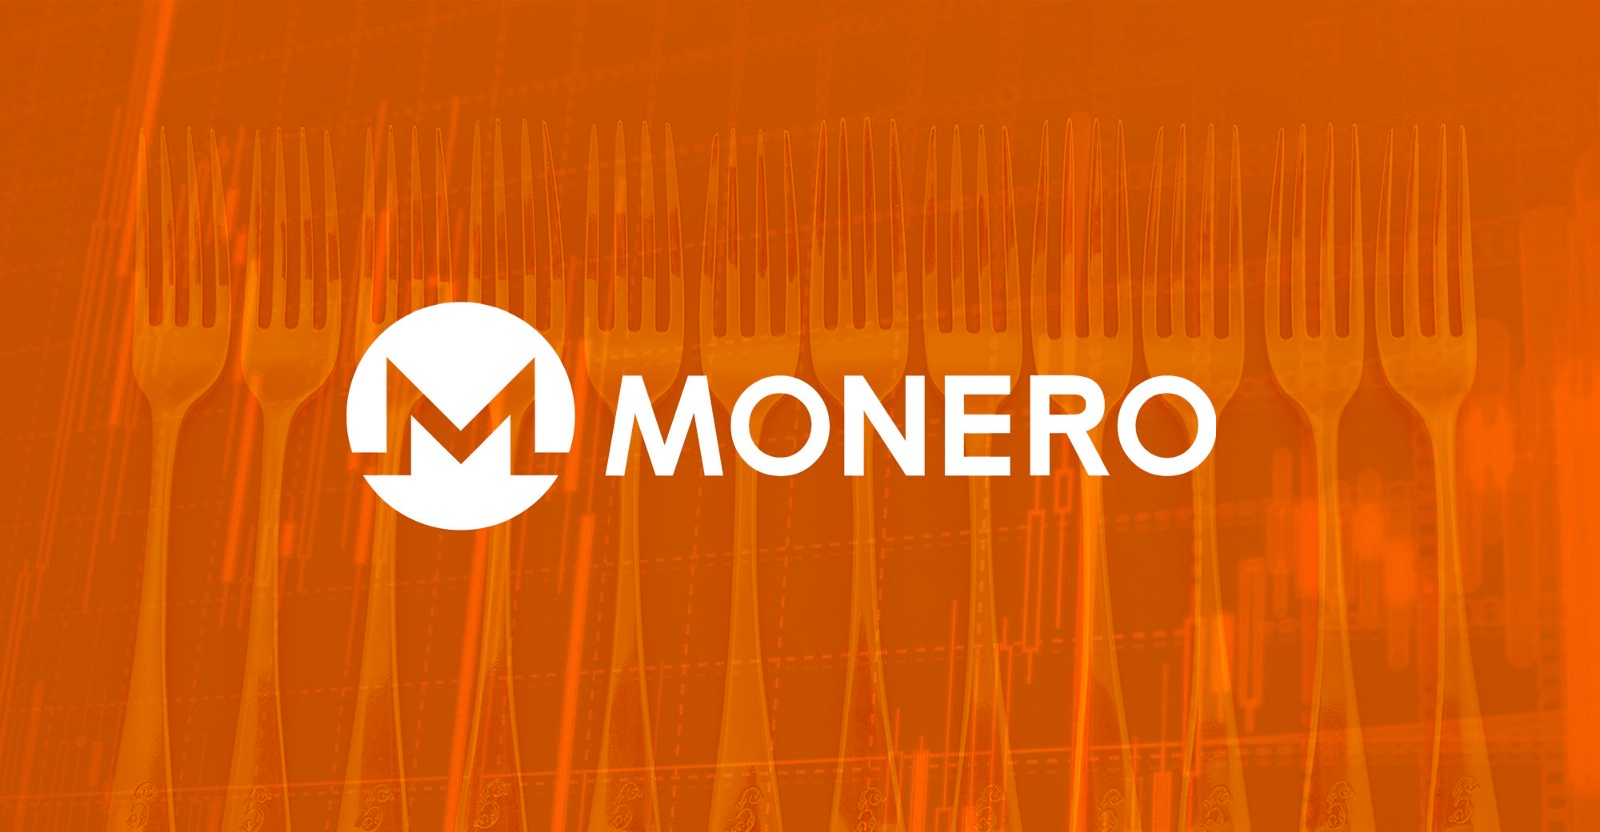 8c0e1cd23798 The recent Monero hard forks are initiatives taken by some Monero  enthusiasts to preserve their idea of a decentralized